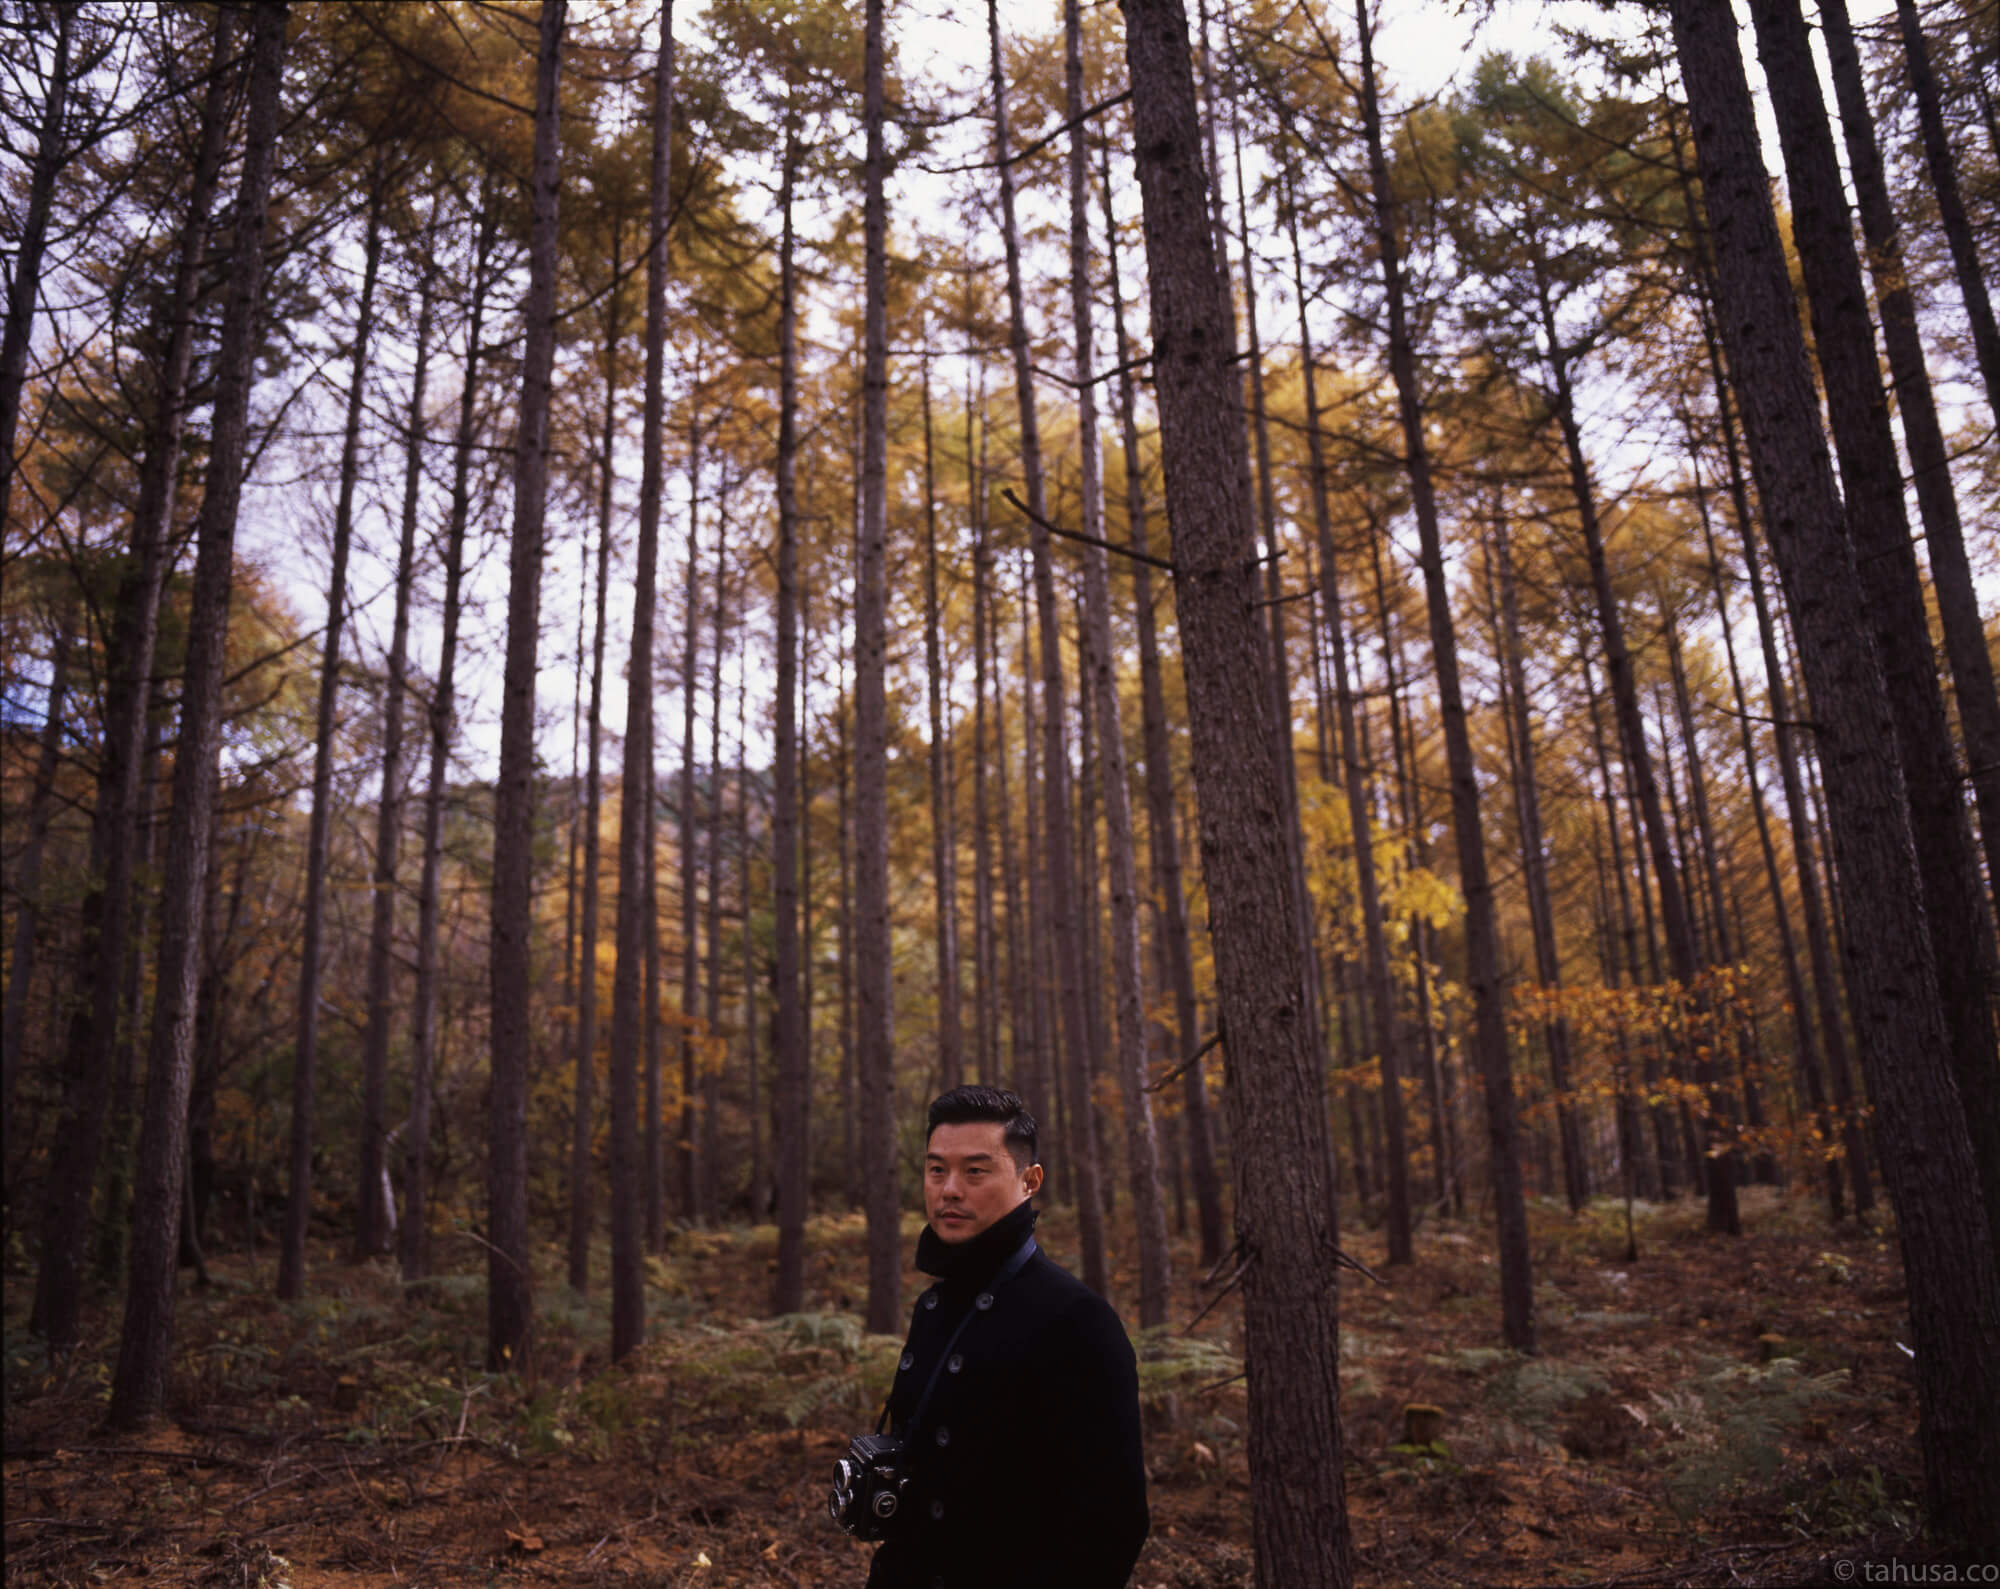 Japan-Travel-trip-with-family-Gary-in-forest-pentax-67-6x7-medium-format-120-120format-RDPIII-RDP-Provia-Fuji-Fujifilm-Japan-Gunma-Snap-55mm-f4-asahi